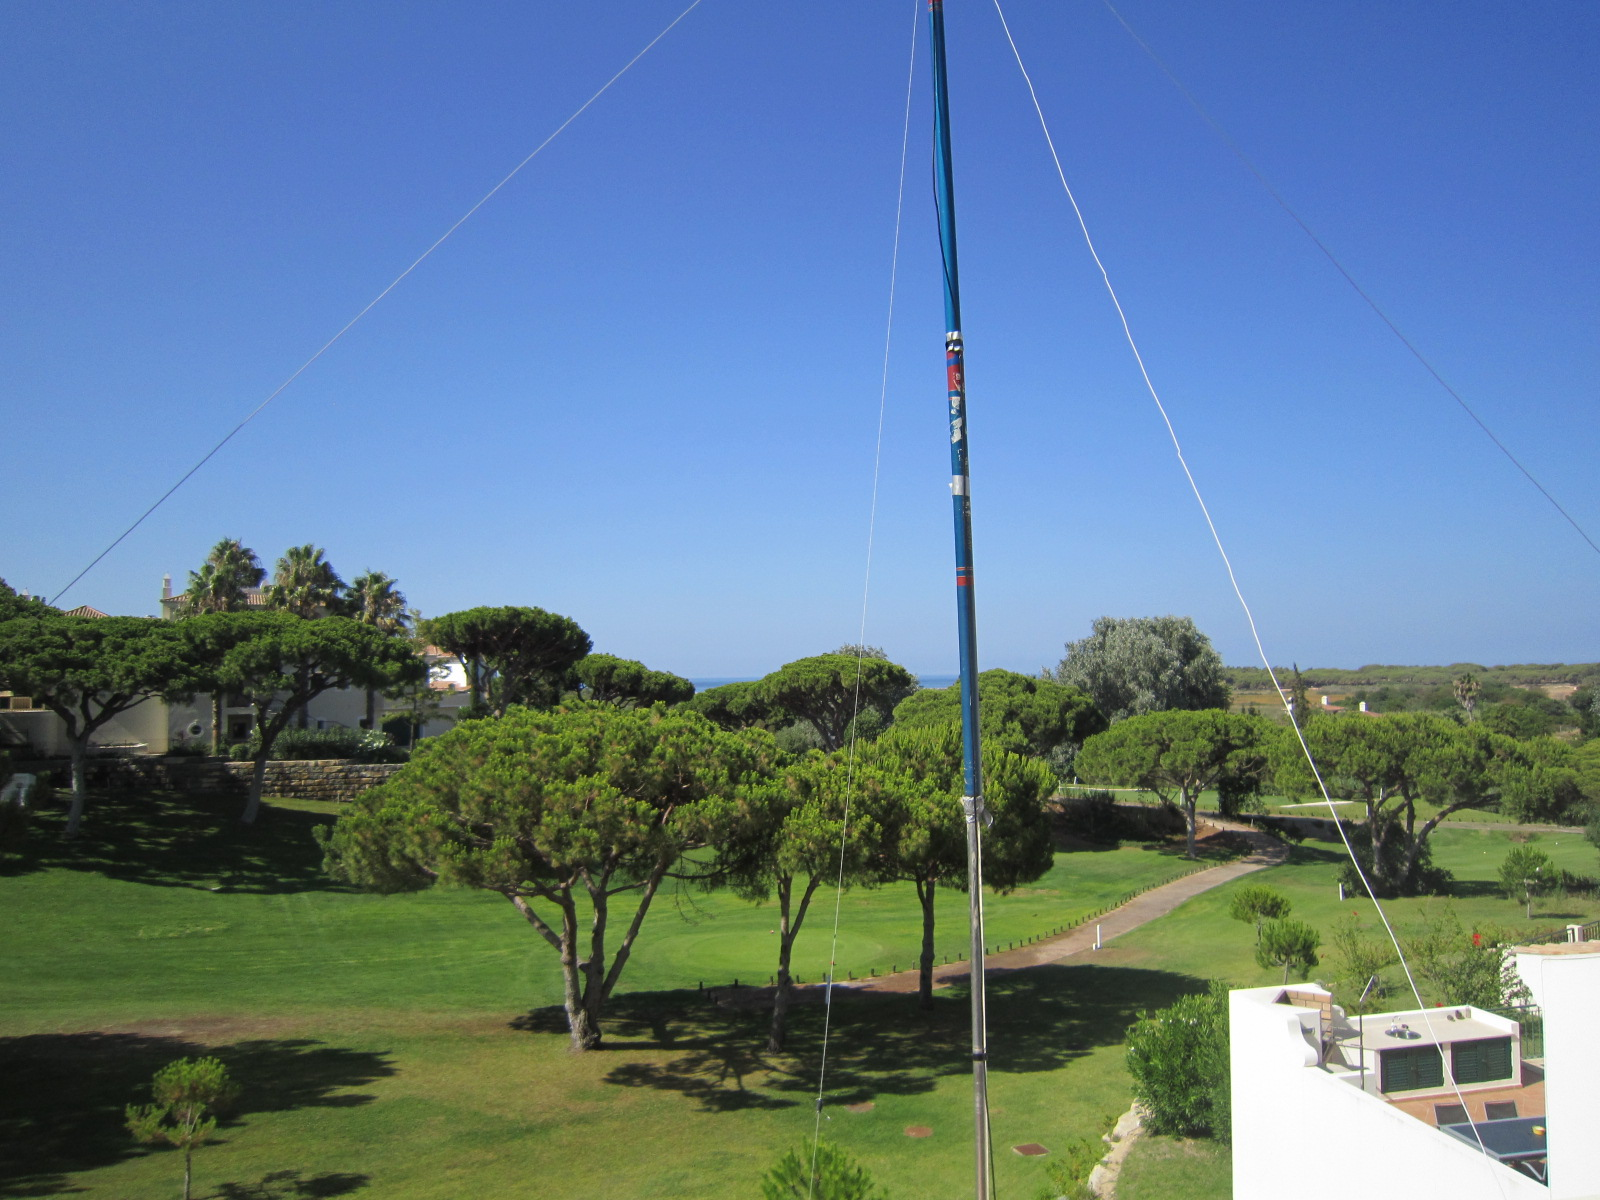 CT7/G3SED view from antenna